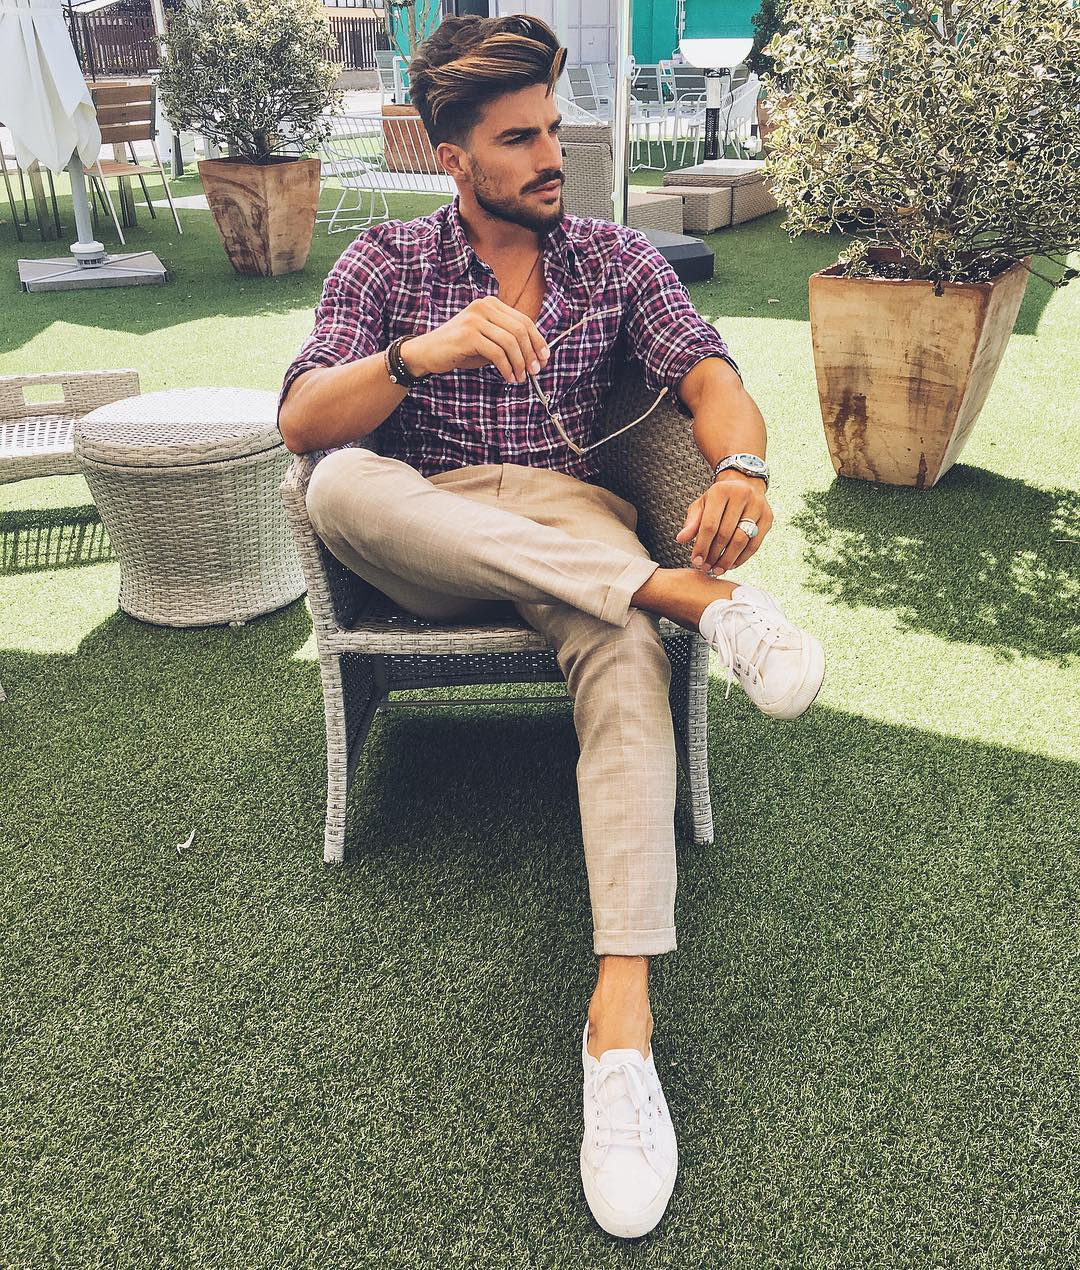 Men 39 S Fashion Blog Inspirational Blog For Men 39 S Wear Men 39 S Style Tips Daily Updated Mens Fashion Blog Mariano Di Vaio New Mens Fashion